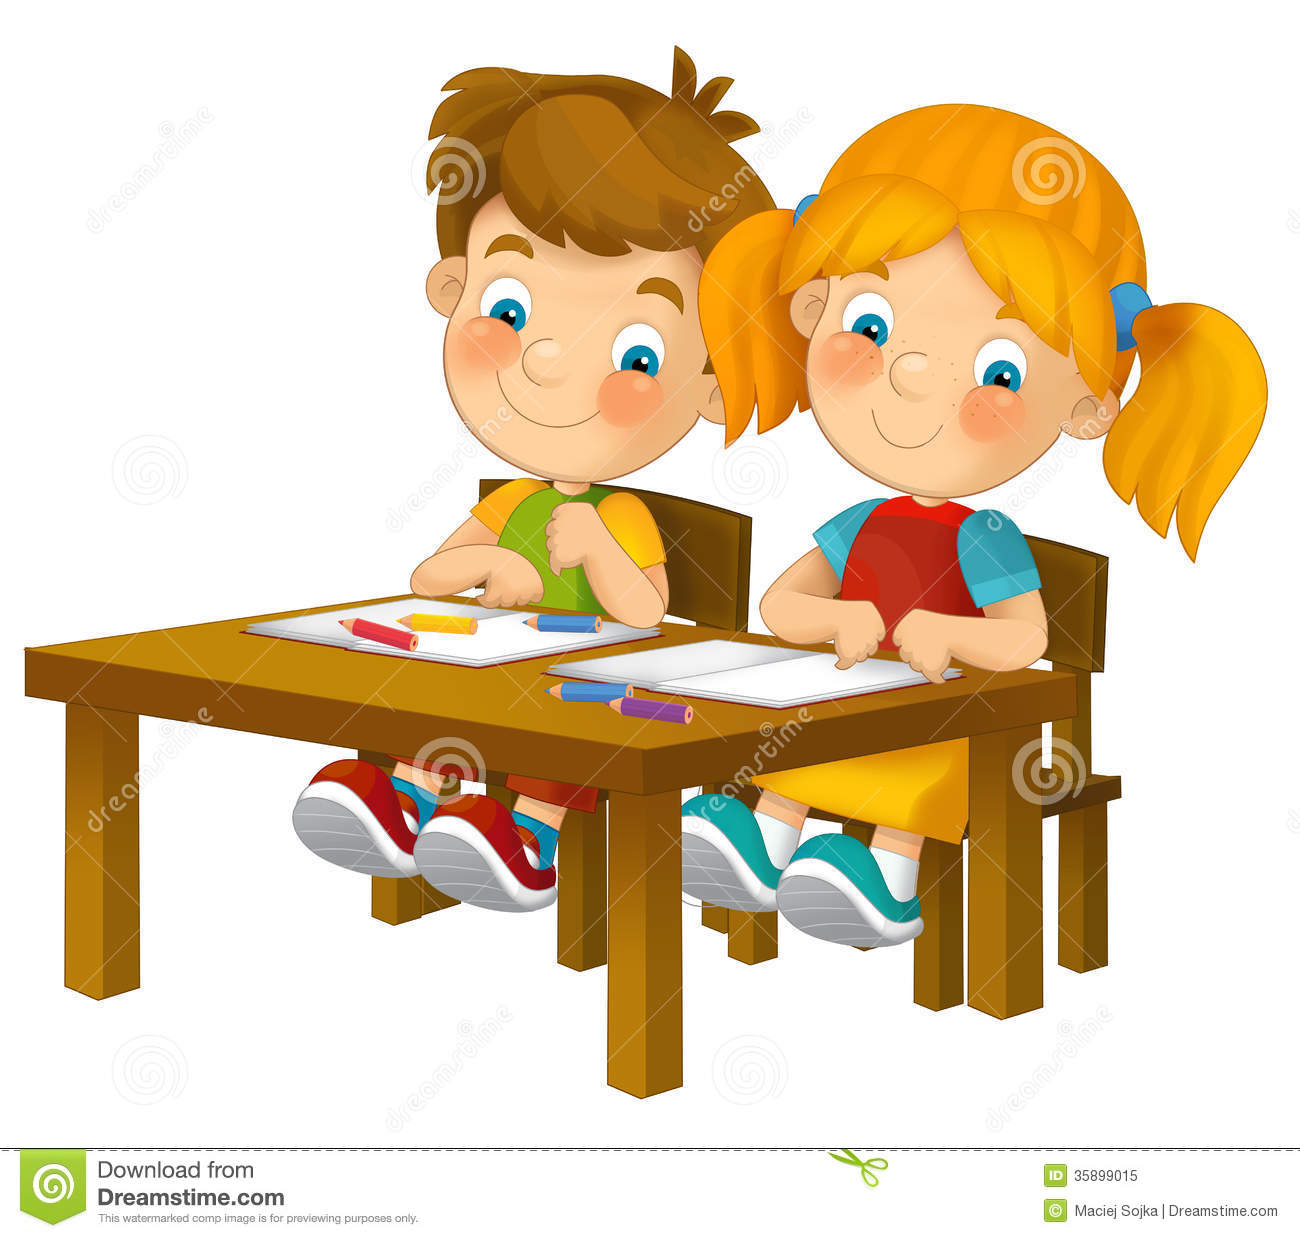 Table and chairs clipart clipart kid - Cartoon Table Clipart Clipart Kid Table And Chairs Clipart Clipart Kid Royalty Free Stock Photo